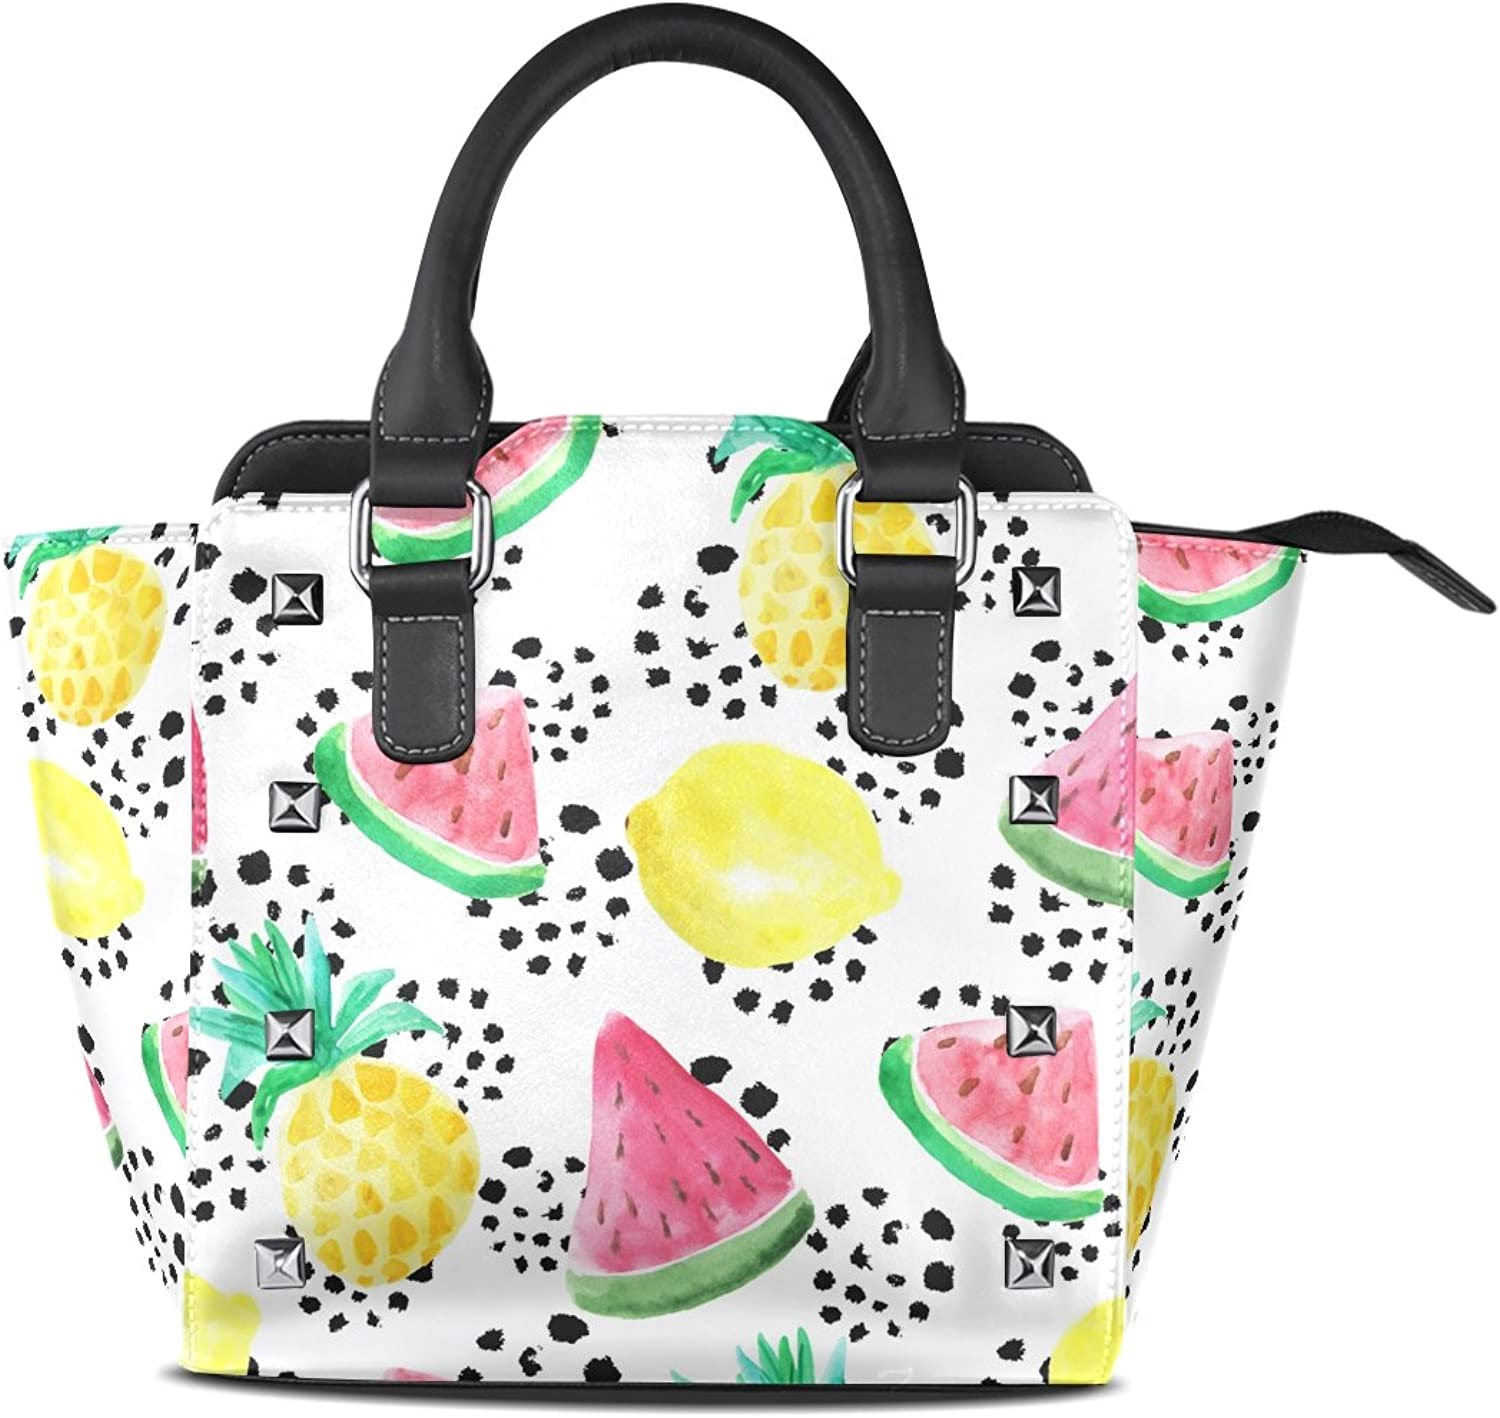 My Little Nest Women's Top Handle Satchel Handbag Summer Watercolor Pineapple Lemon Watermelon Ladies PU Leather Shoulder Bag Crossbody Bag